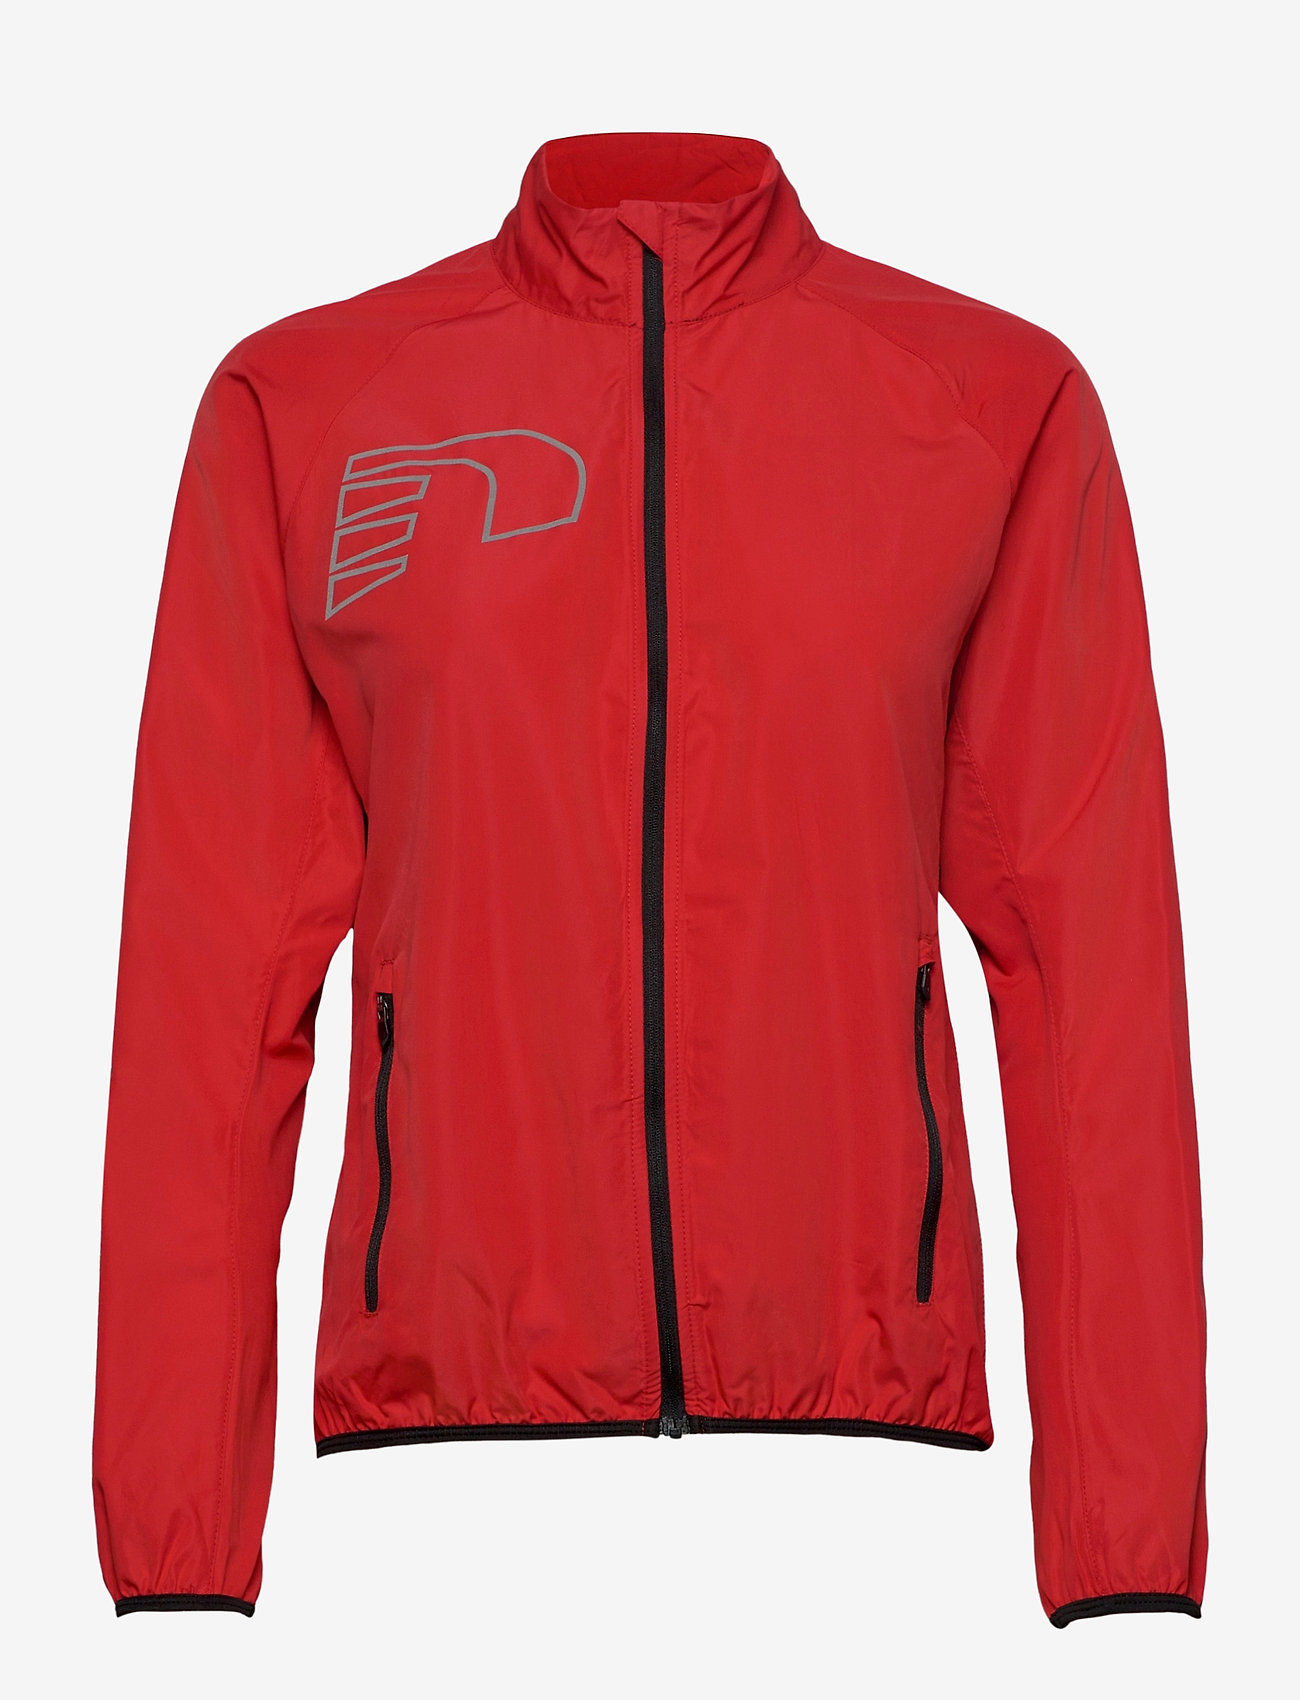 Newline - CORE JACKET - training jackets - red - 1